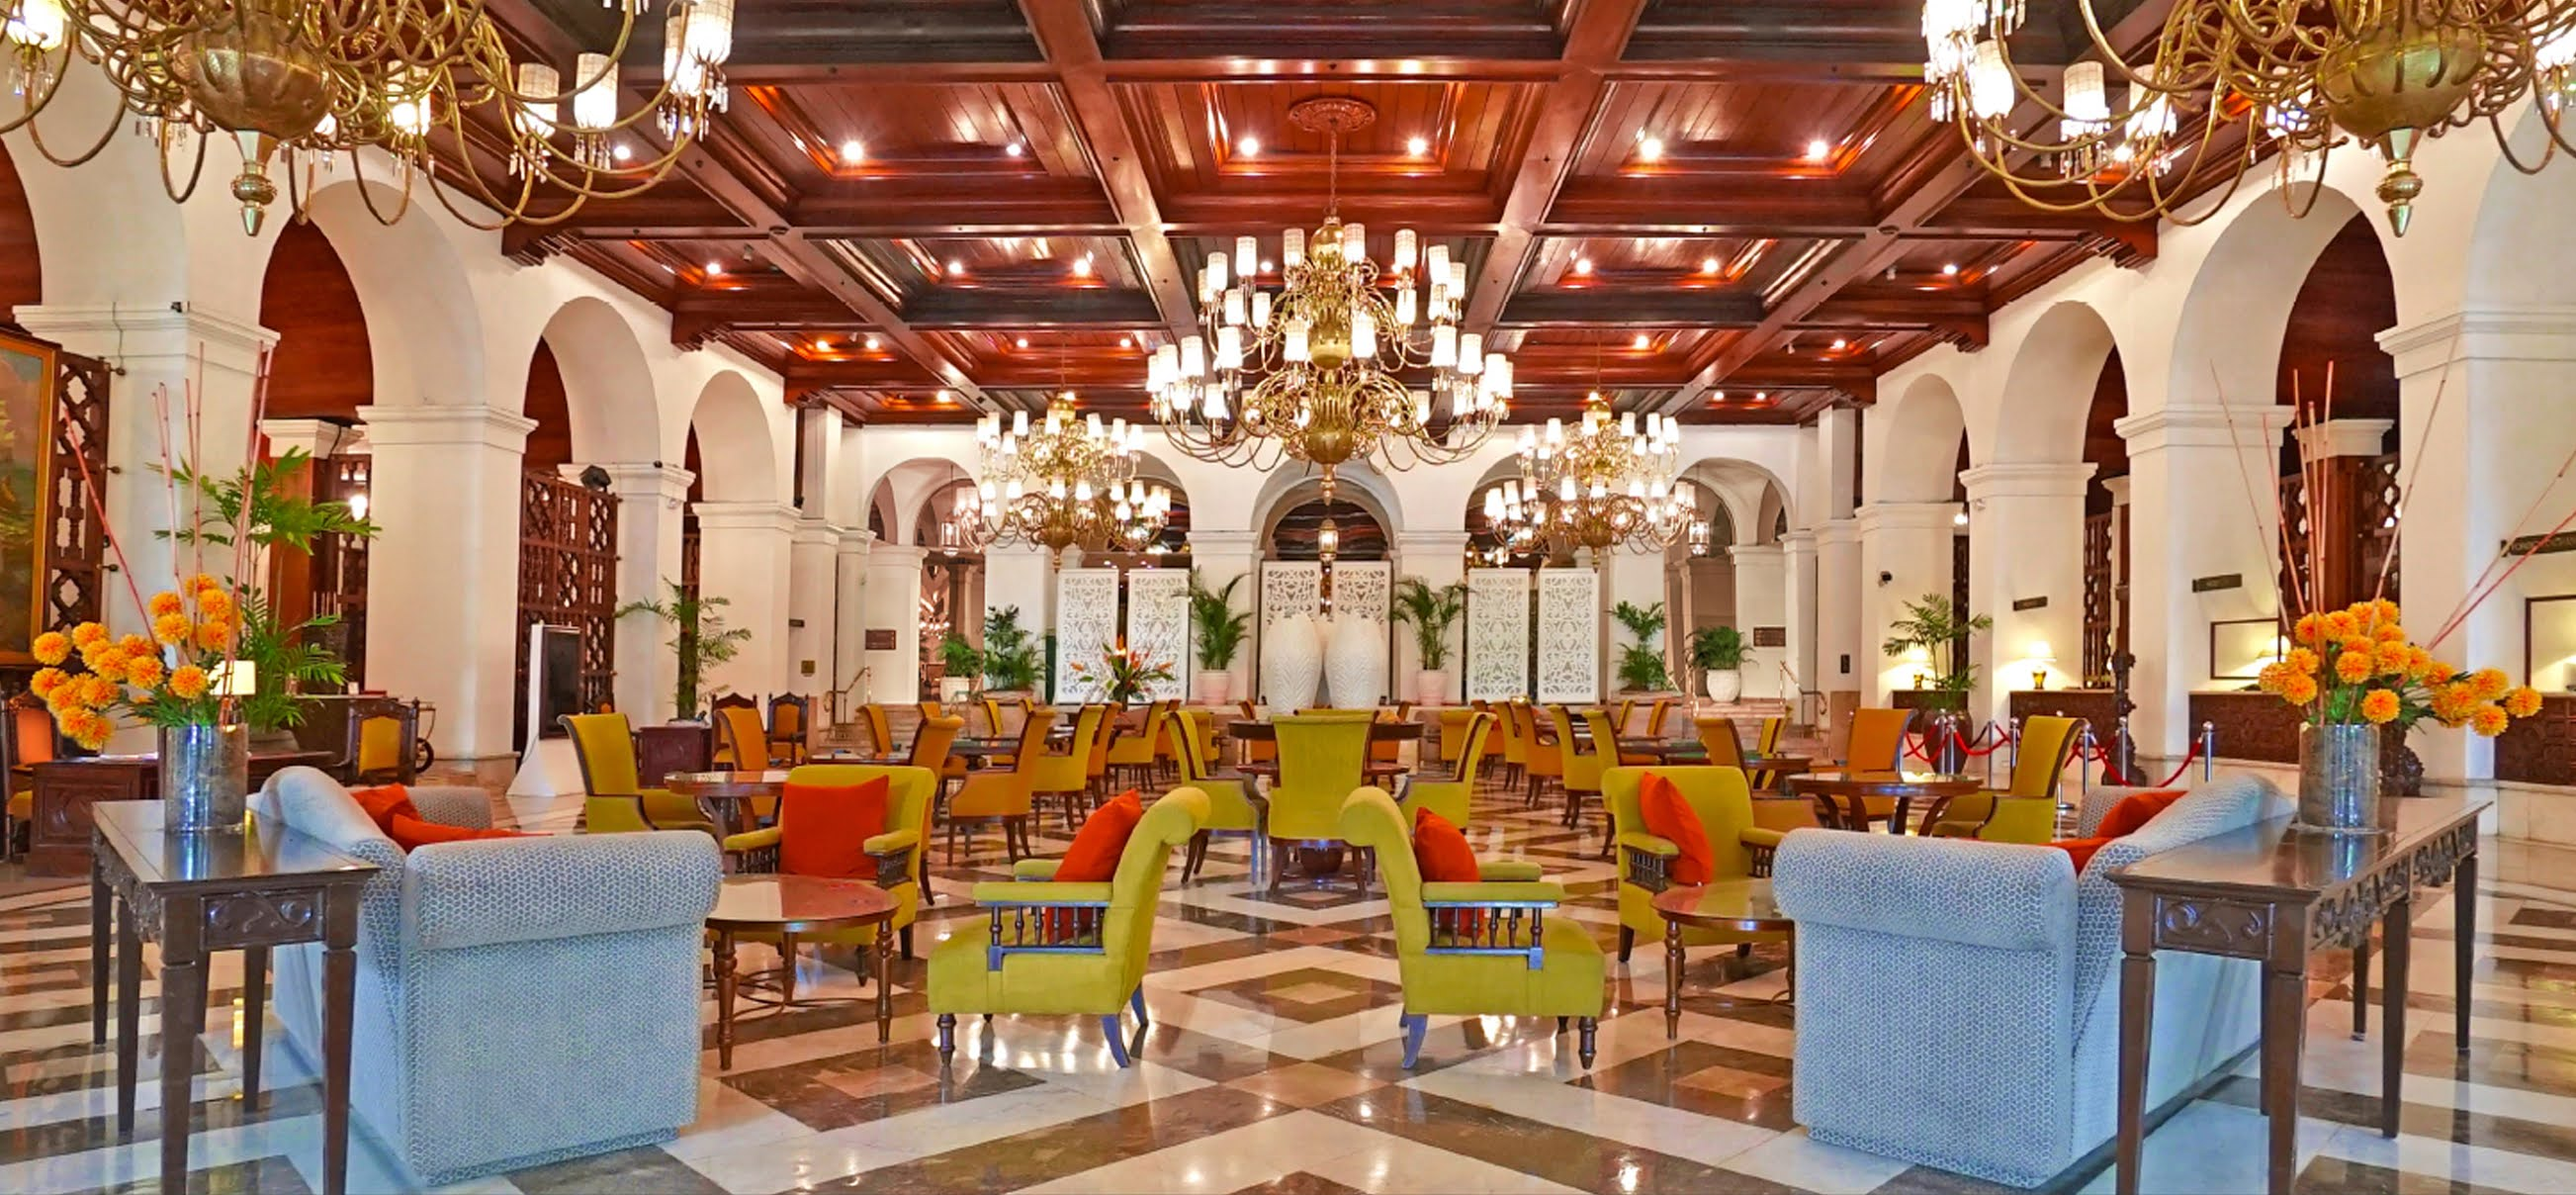 The Manila Hotel's Lounge Reopens.